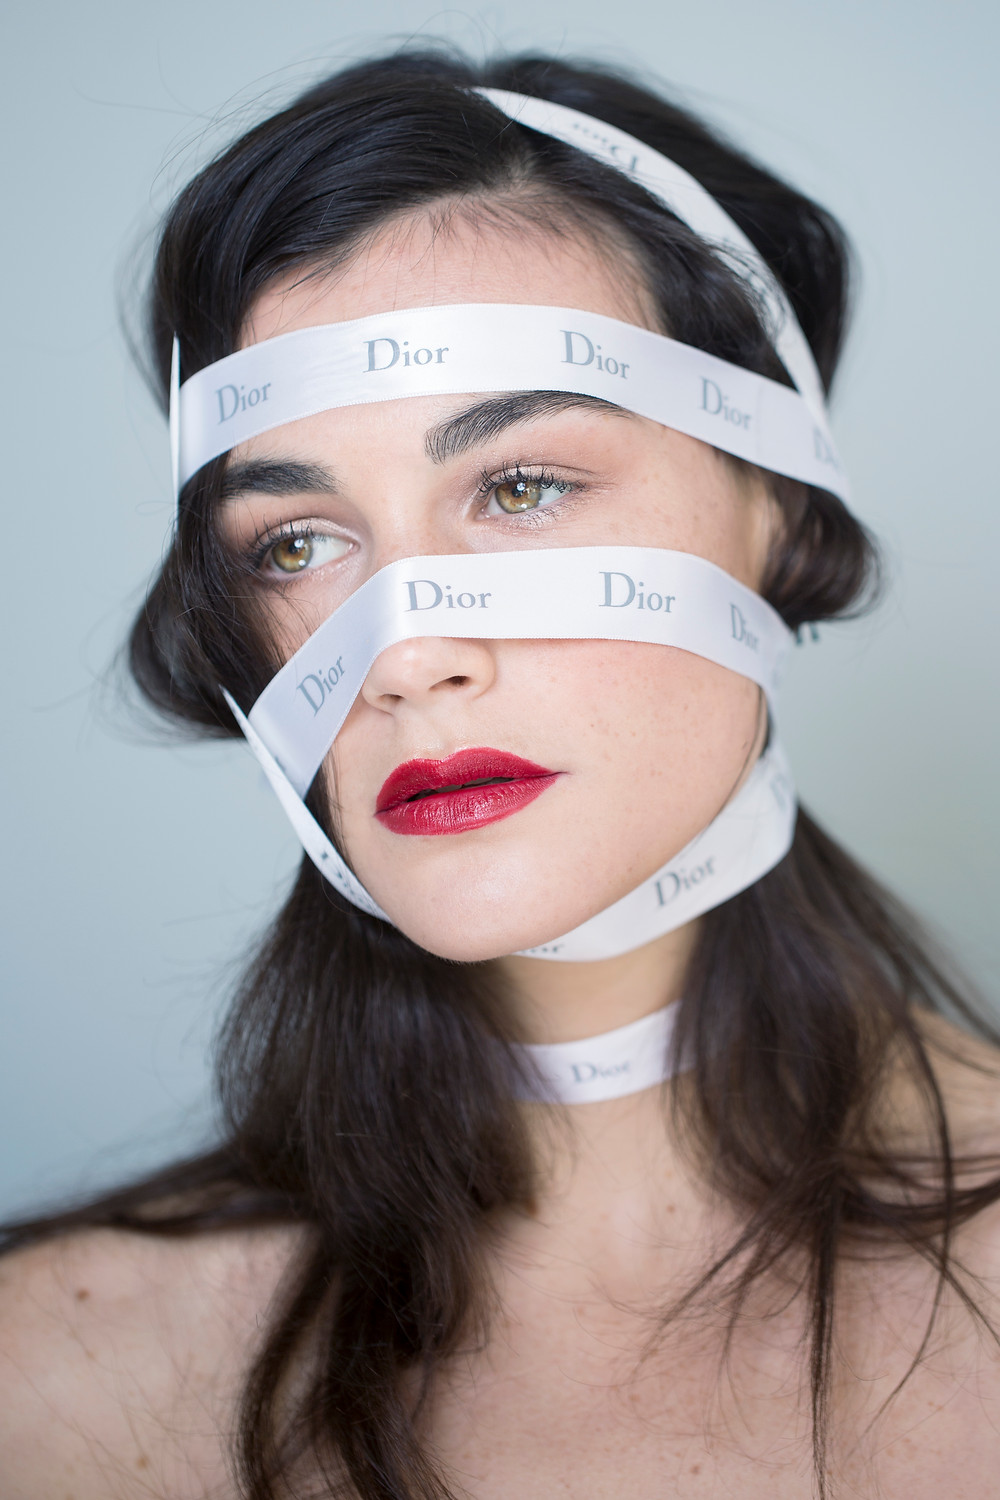 Photographer FRENCH COWBOY dior beauty